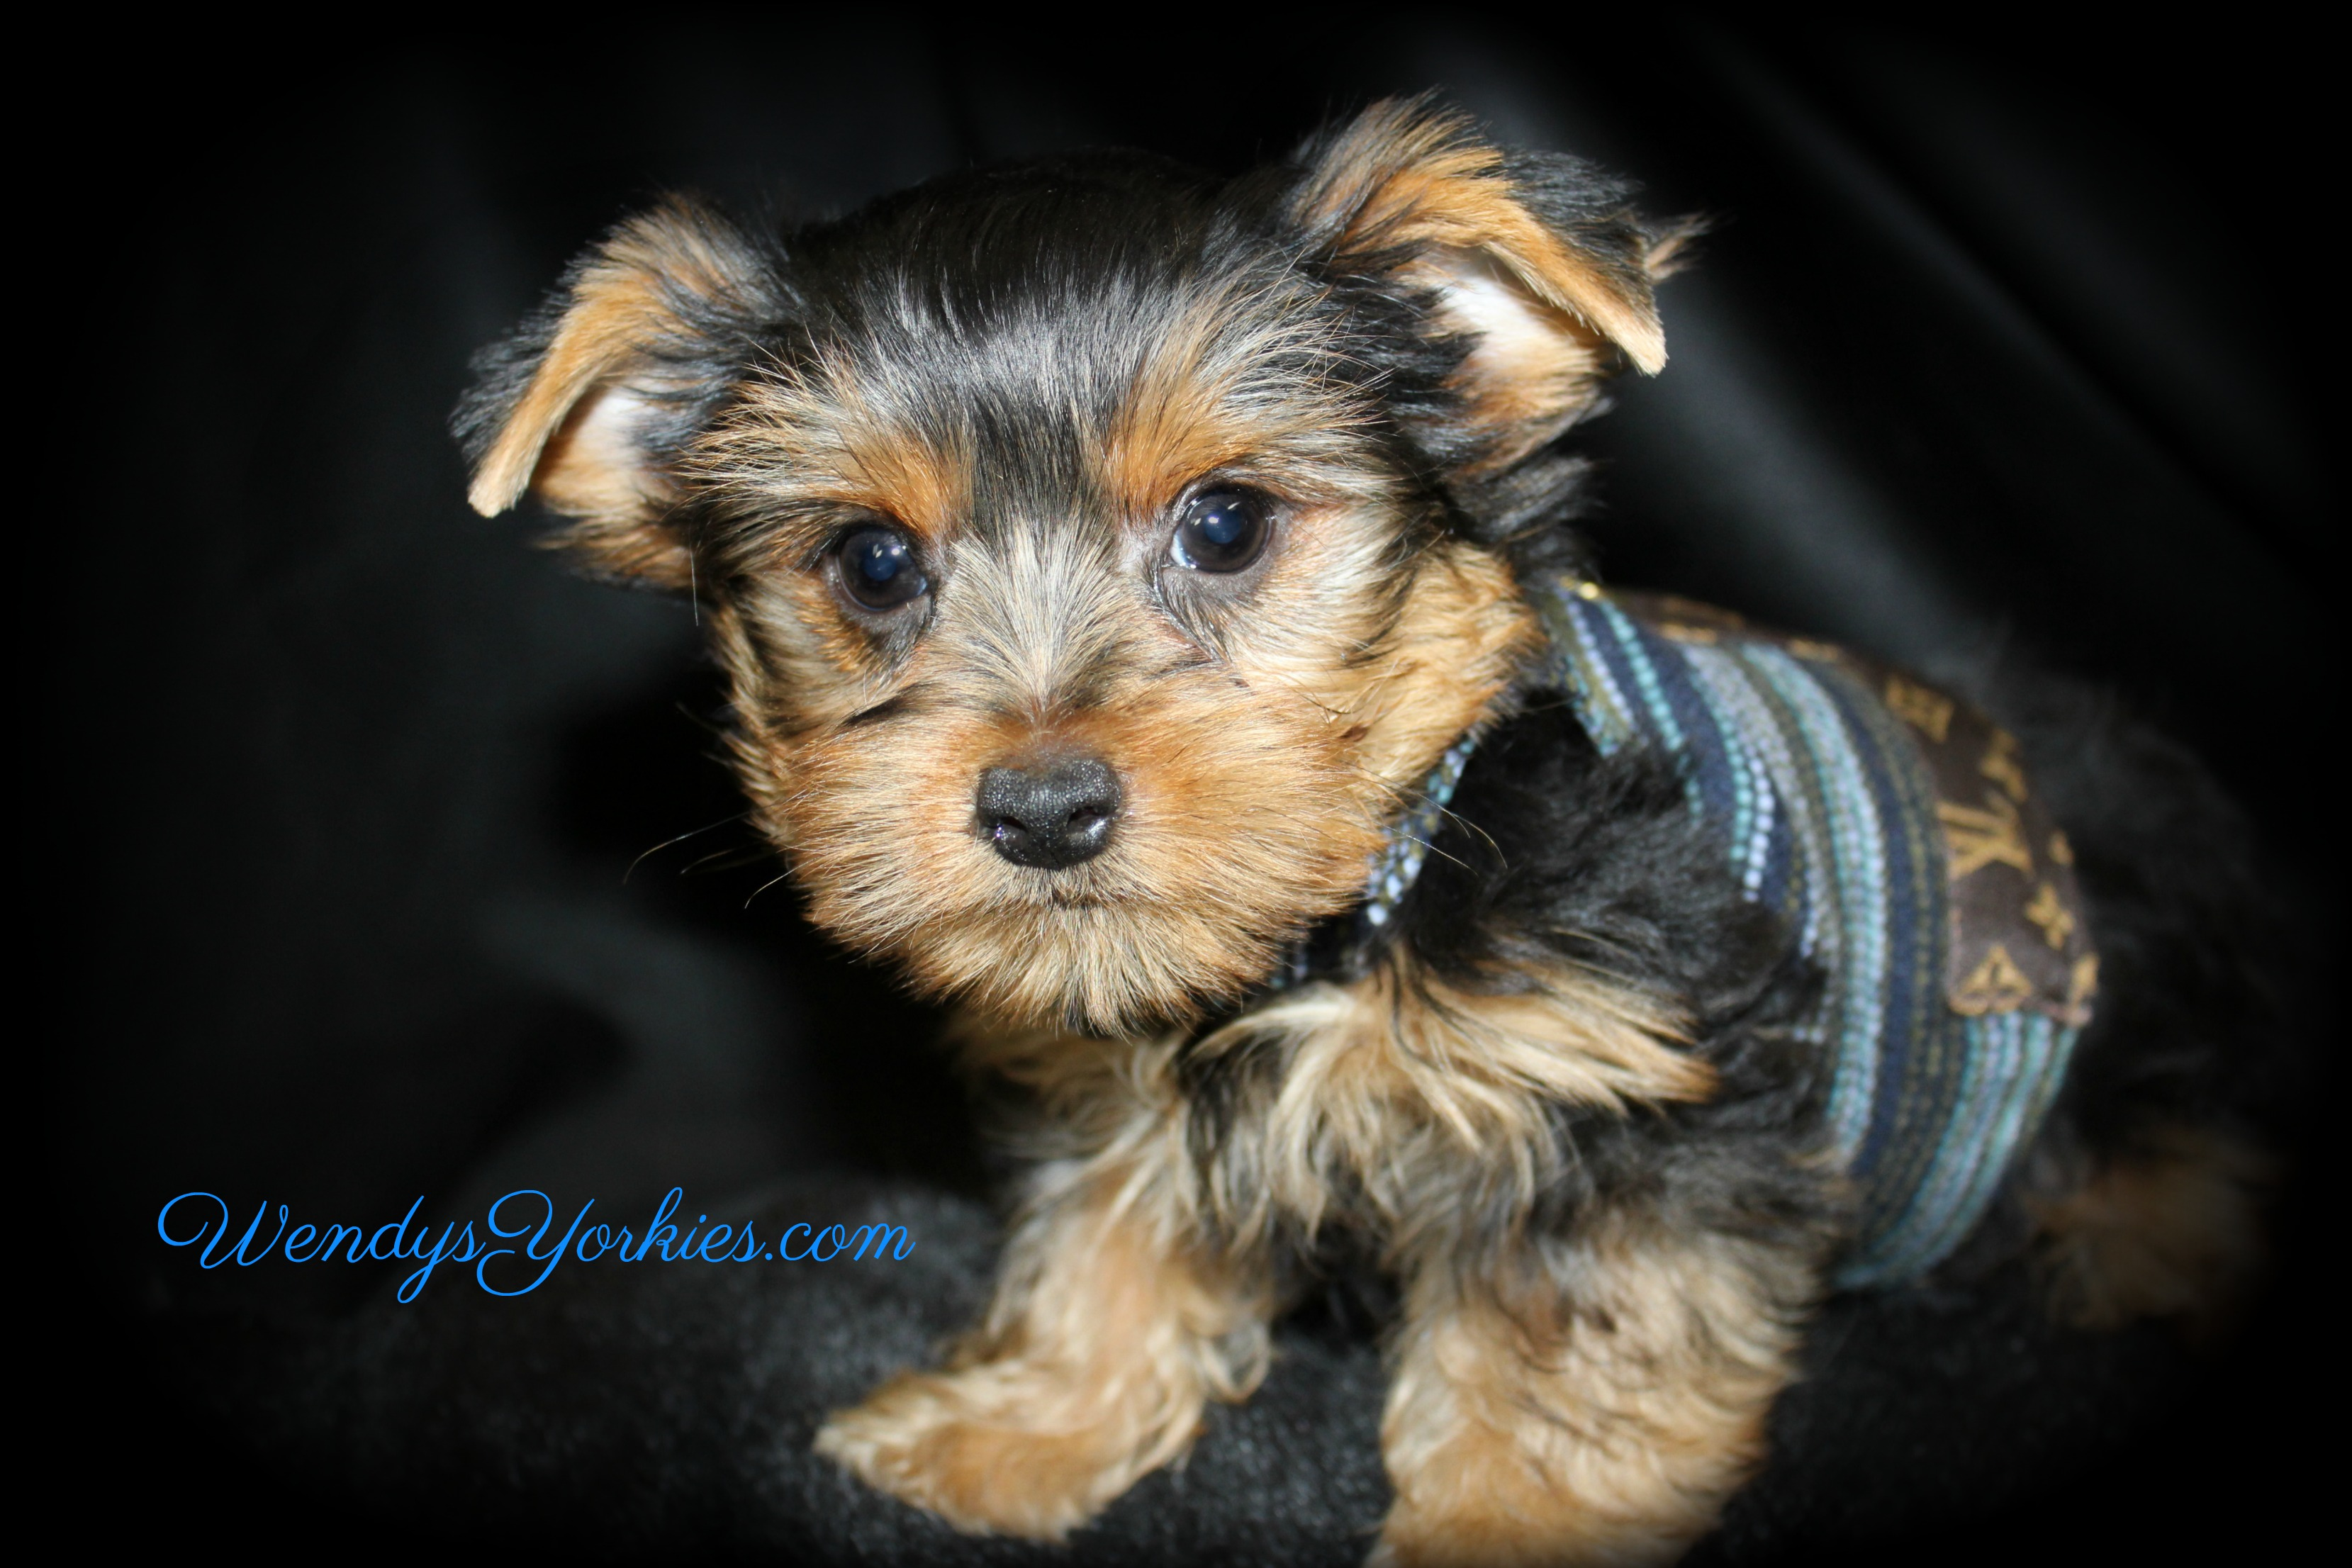 Teacup Male Yorkie puppy for sale, Harley tm1, WendysYorkies.com